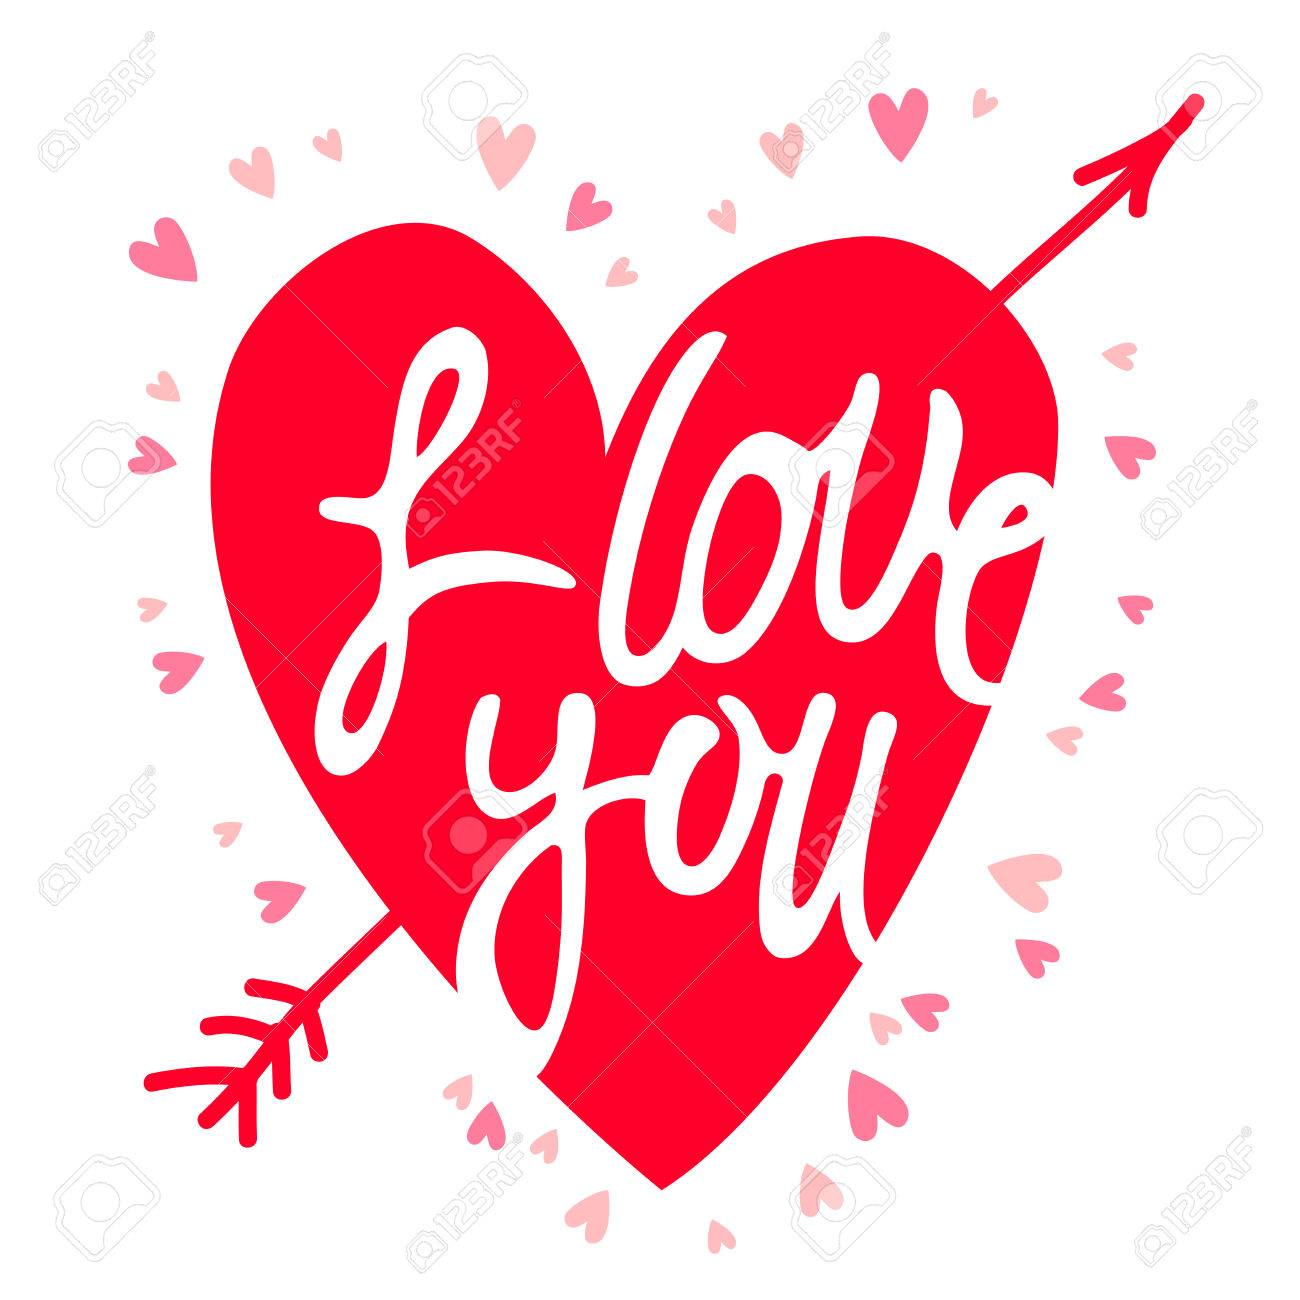 Download Wallpaper Name Divya - 49319919-red-heart-with-the-inscription-i-love-you-vector-illustration-on-a-white-background-  You Should Have_55662.jpg